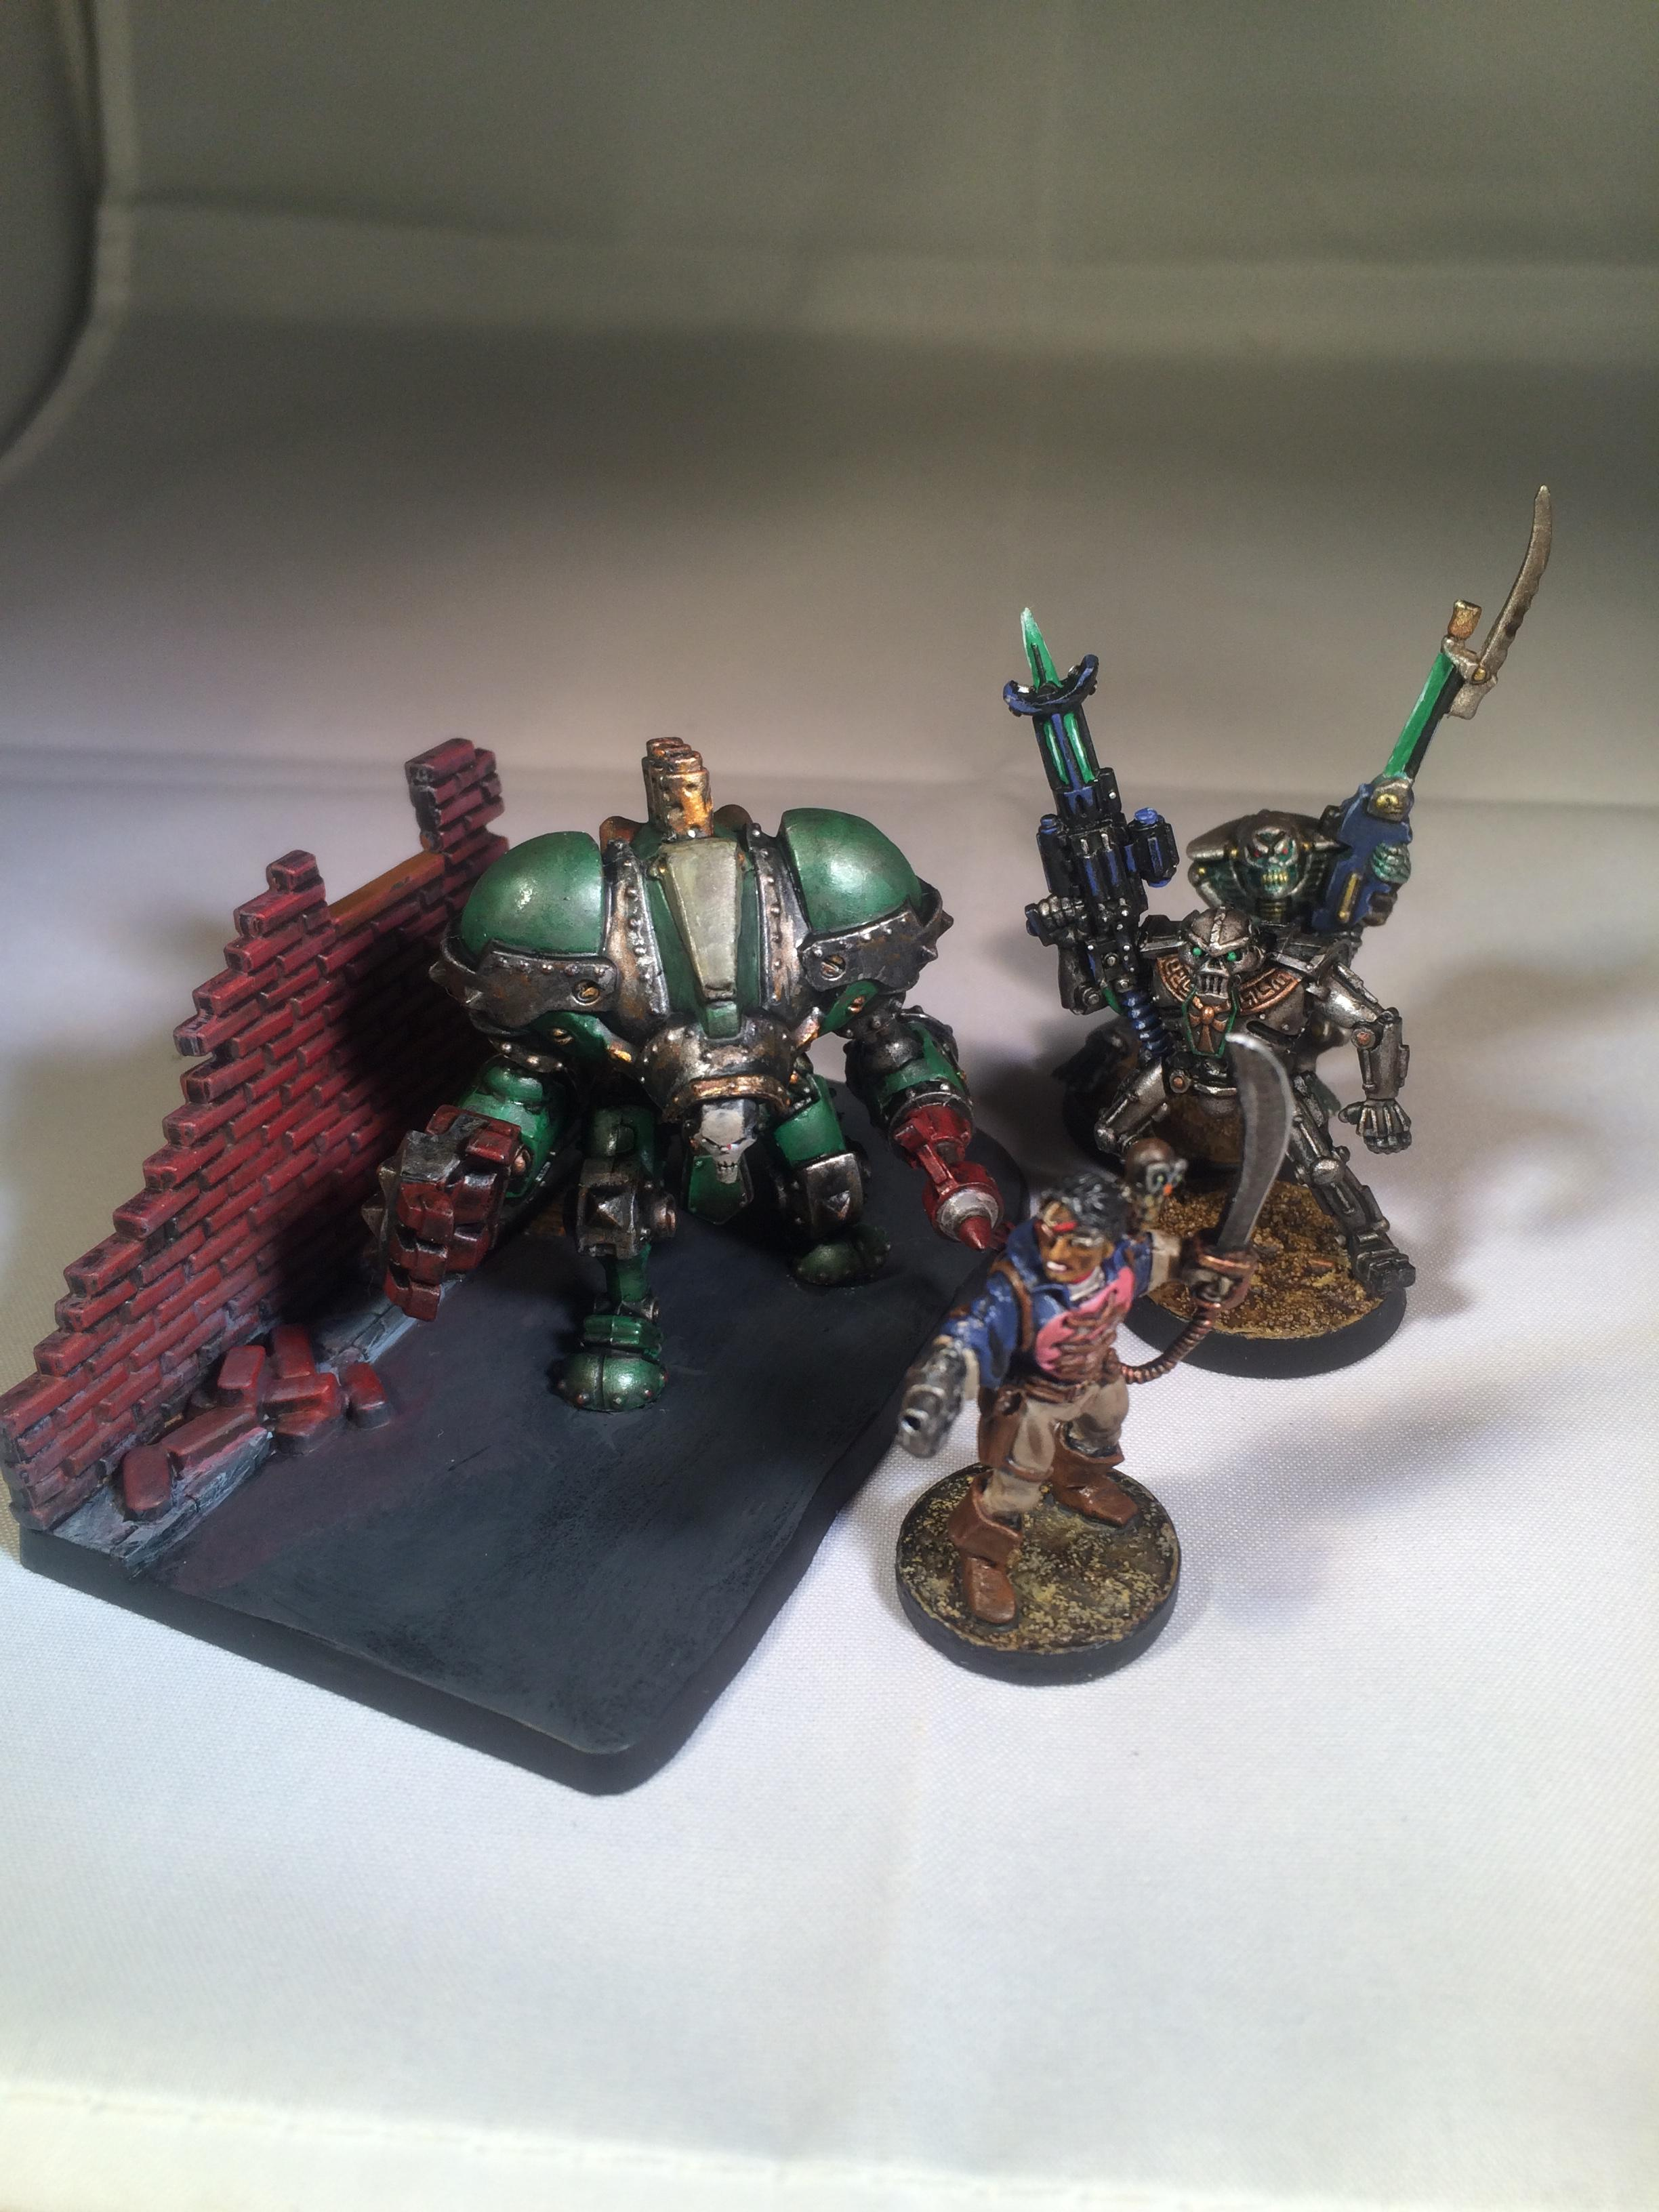 Conversion, Cool, Lord, Necrons, Old, Oldhammer, Quest, Rogue, Star, Style, Trader